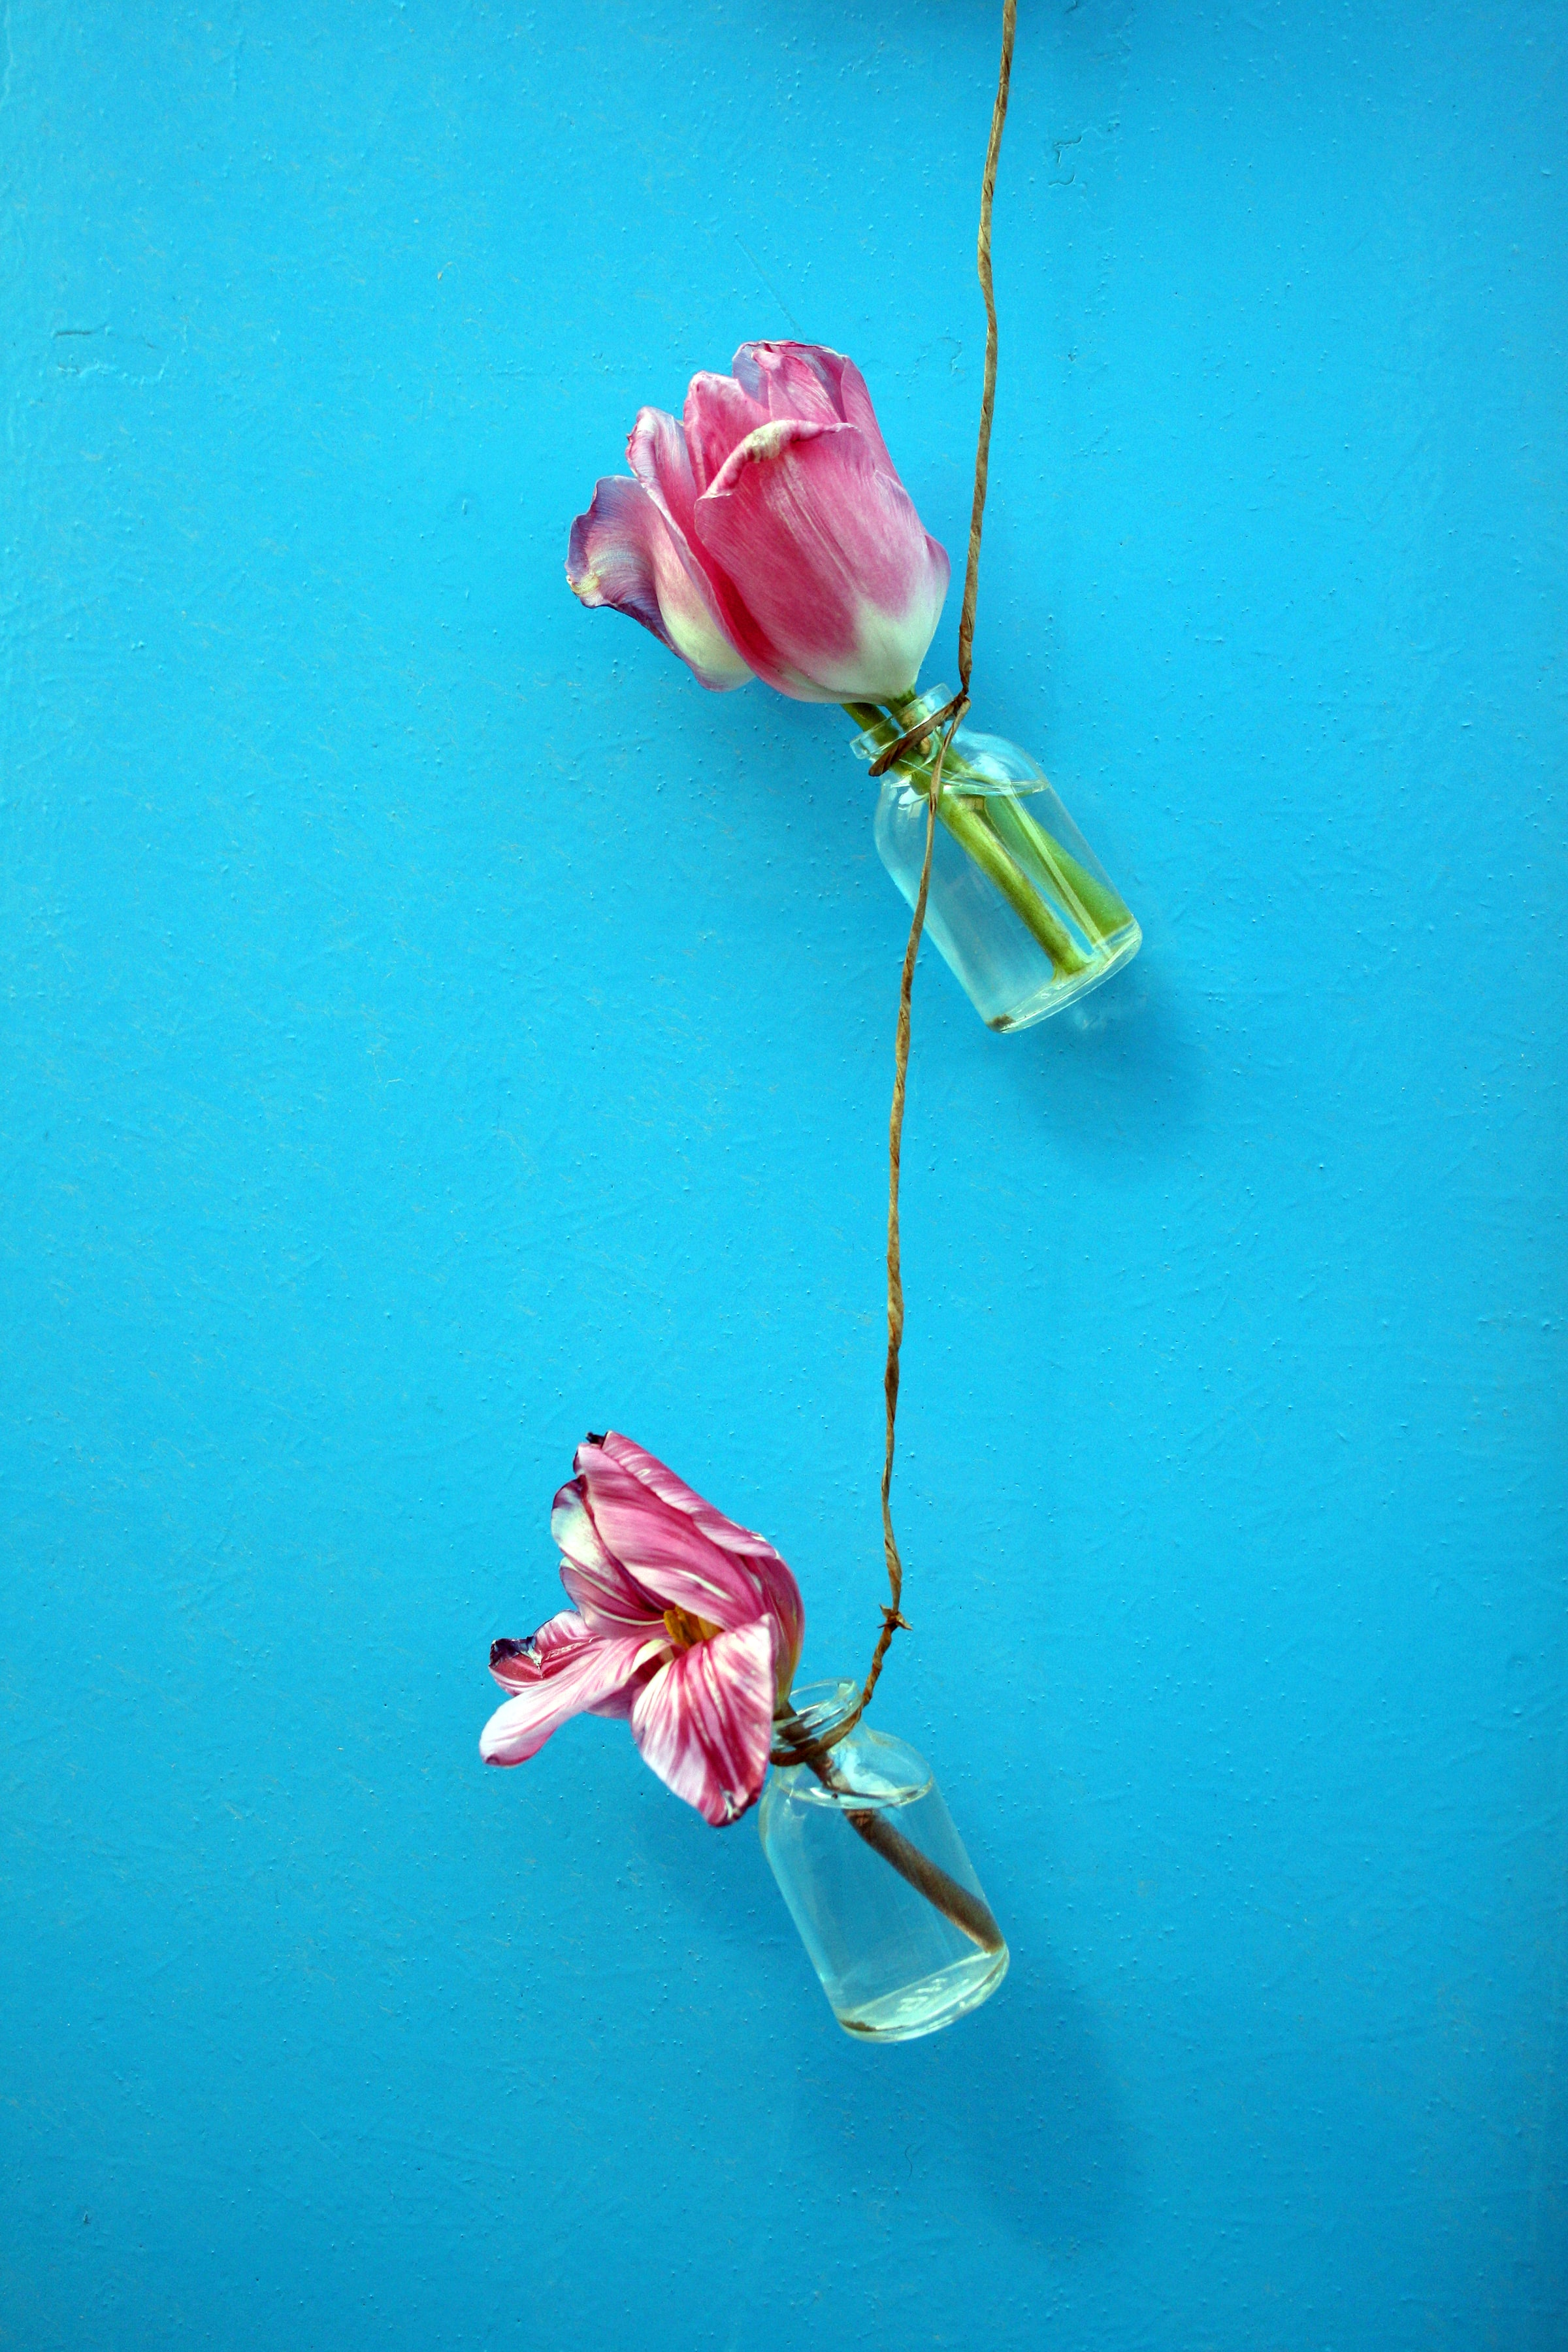 72202 download wallpaper Wall, Flowers, Tulips, Rope screensavers and pictures for free